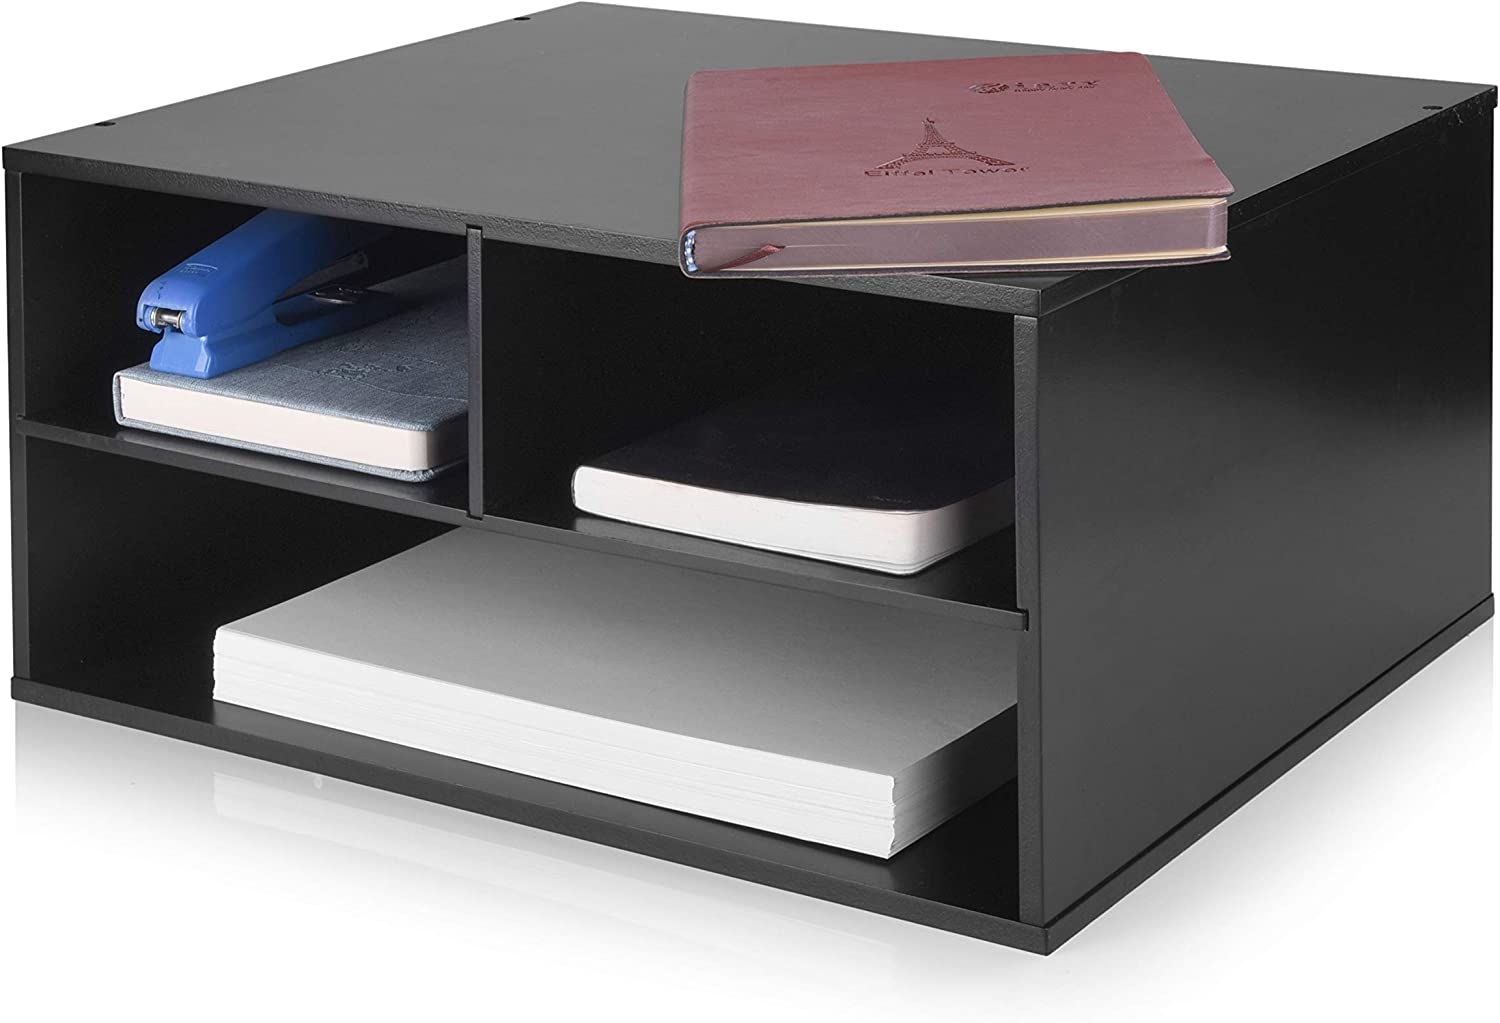 eMerit Printer Stand Shelf with Storage Wood Desk Paper Organzier for Home/Office,Printer Riser, 2 Tire (Black): Home Audio & Theater